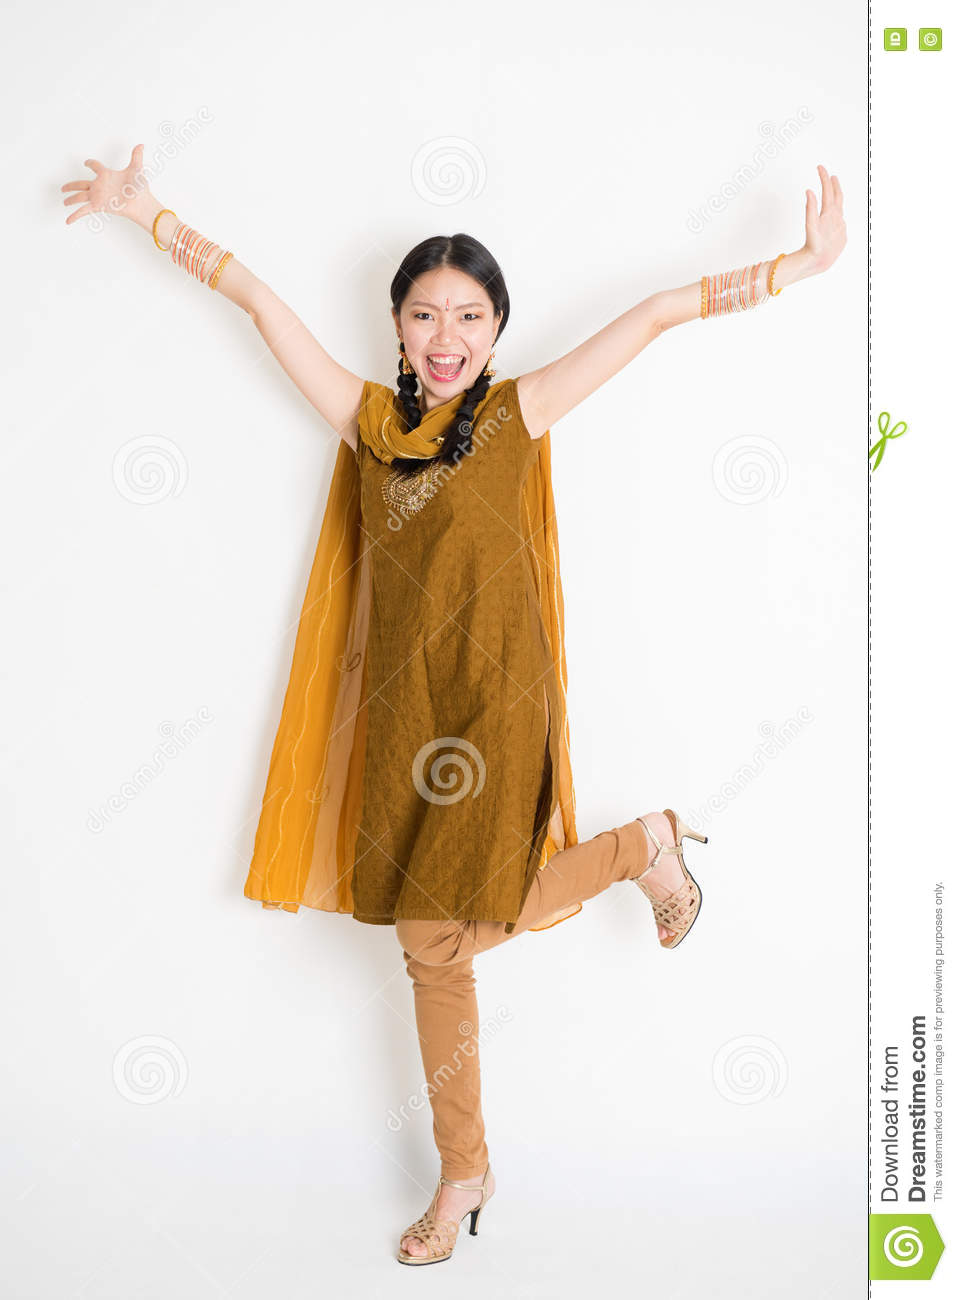 0d27f9a883 Portrait of excited mixed race Indian Chinese girl in traditional punjabi  dress arms raised, full length standing on plain white background.